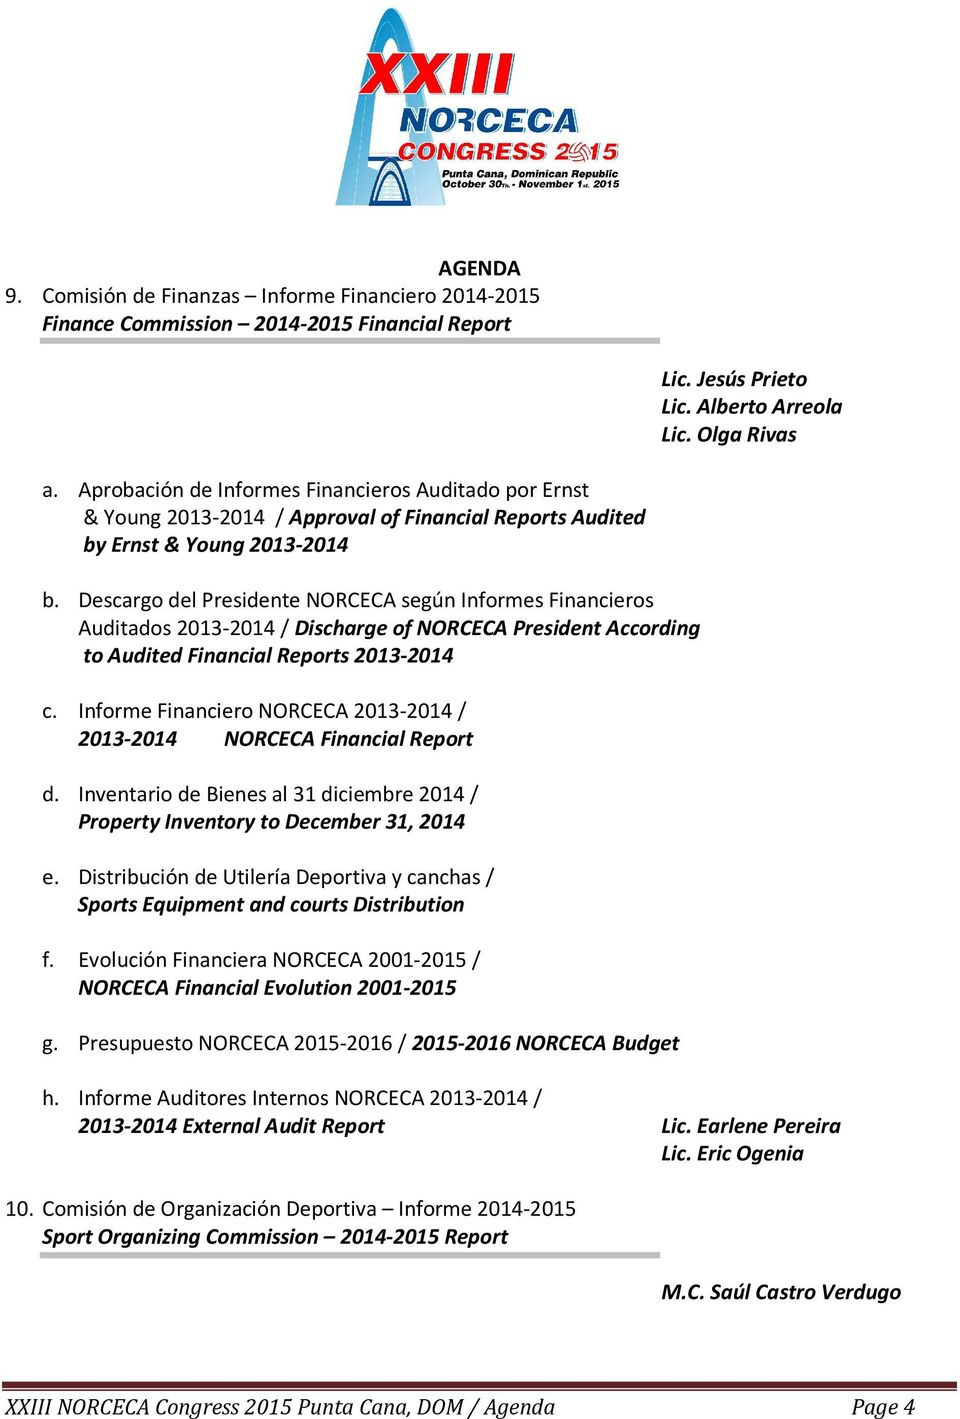 Descargo del Presidente NORCECA según Informes Financieros Auditados 2013-2014 / Discharge of NORCECA President According to Audited Financial Reports 2013-2014 c.